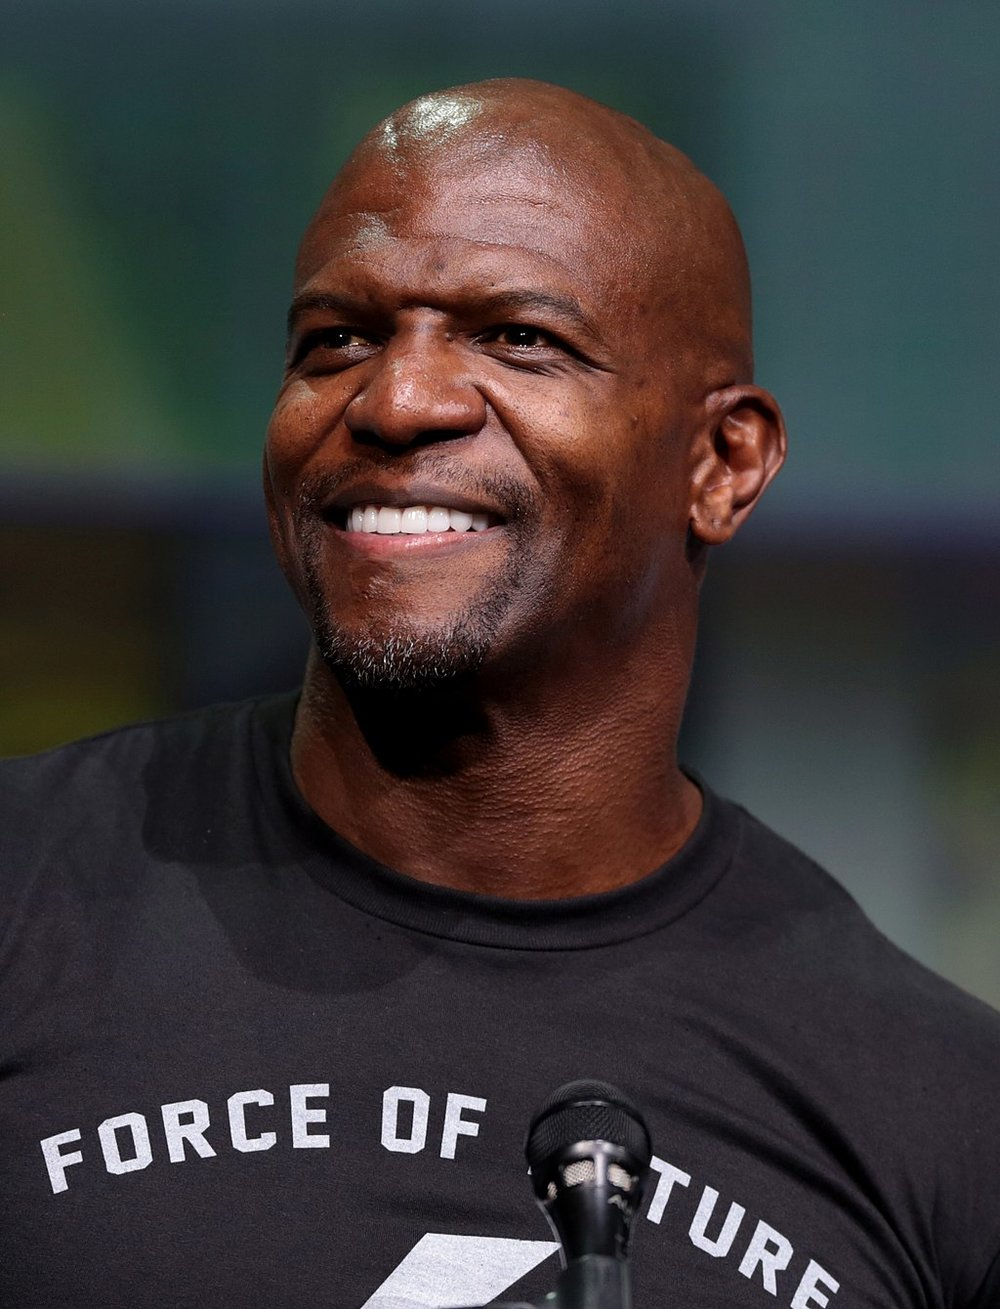 Actor and football player Terry Crews spoke out about being sexually assaulted by a Hollywood executive named Adam Venit. Crews also signed the letter. Image Source:  Gage Skidmore